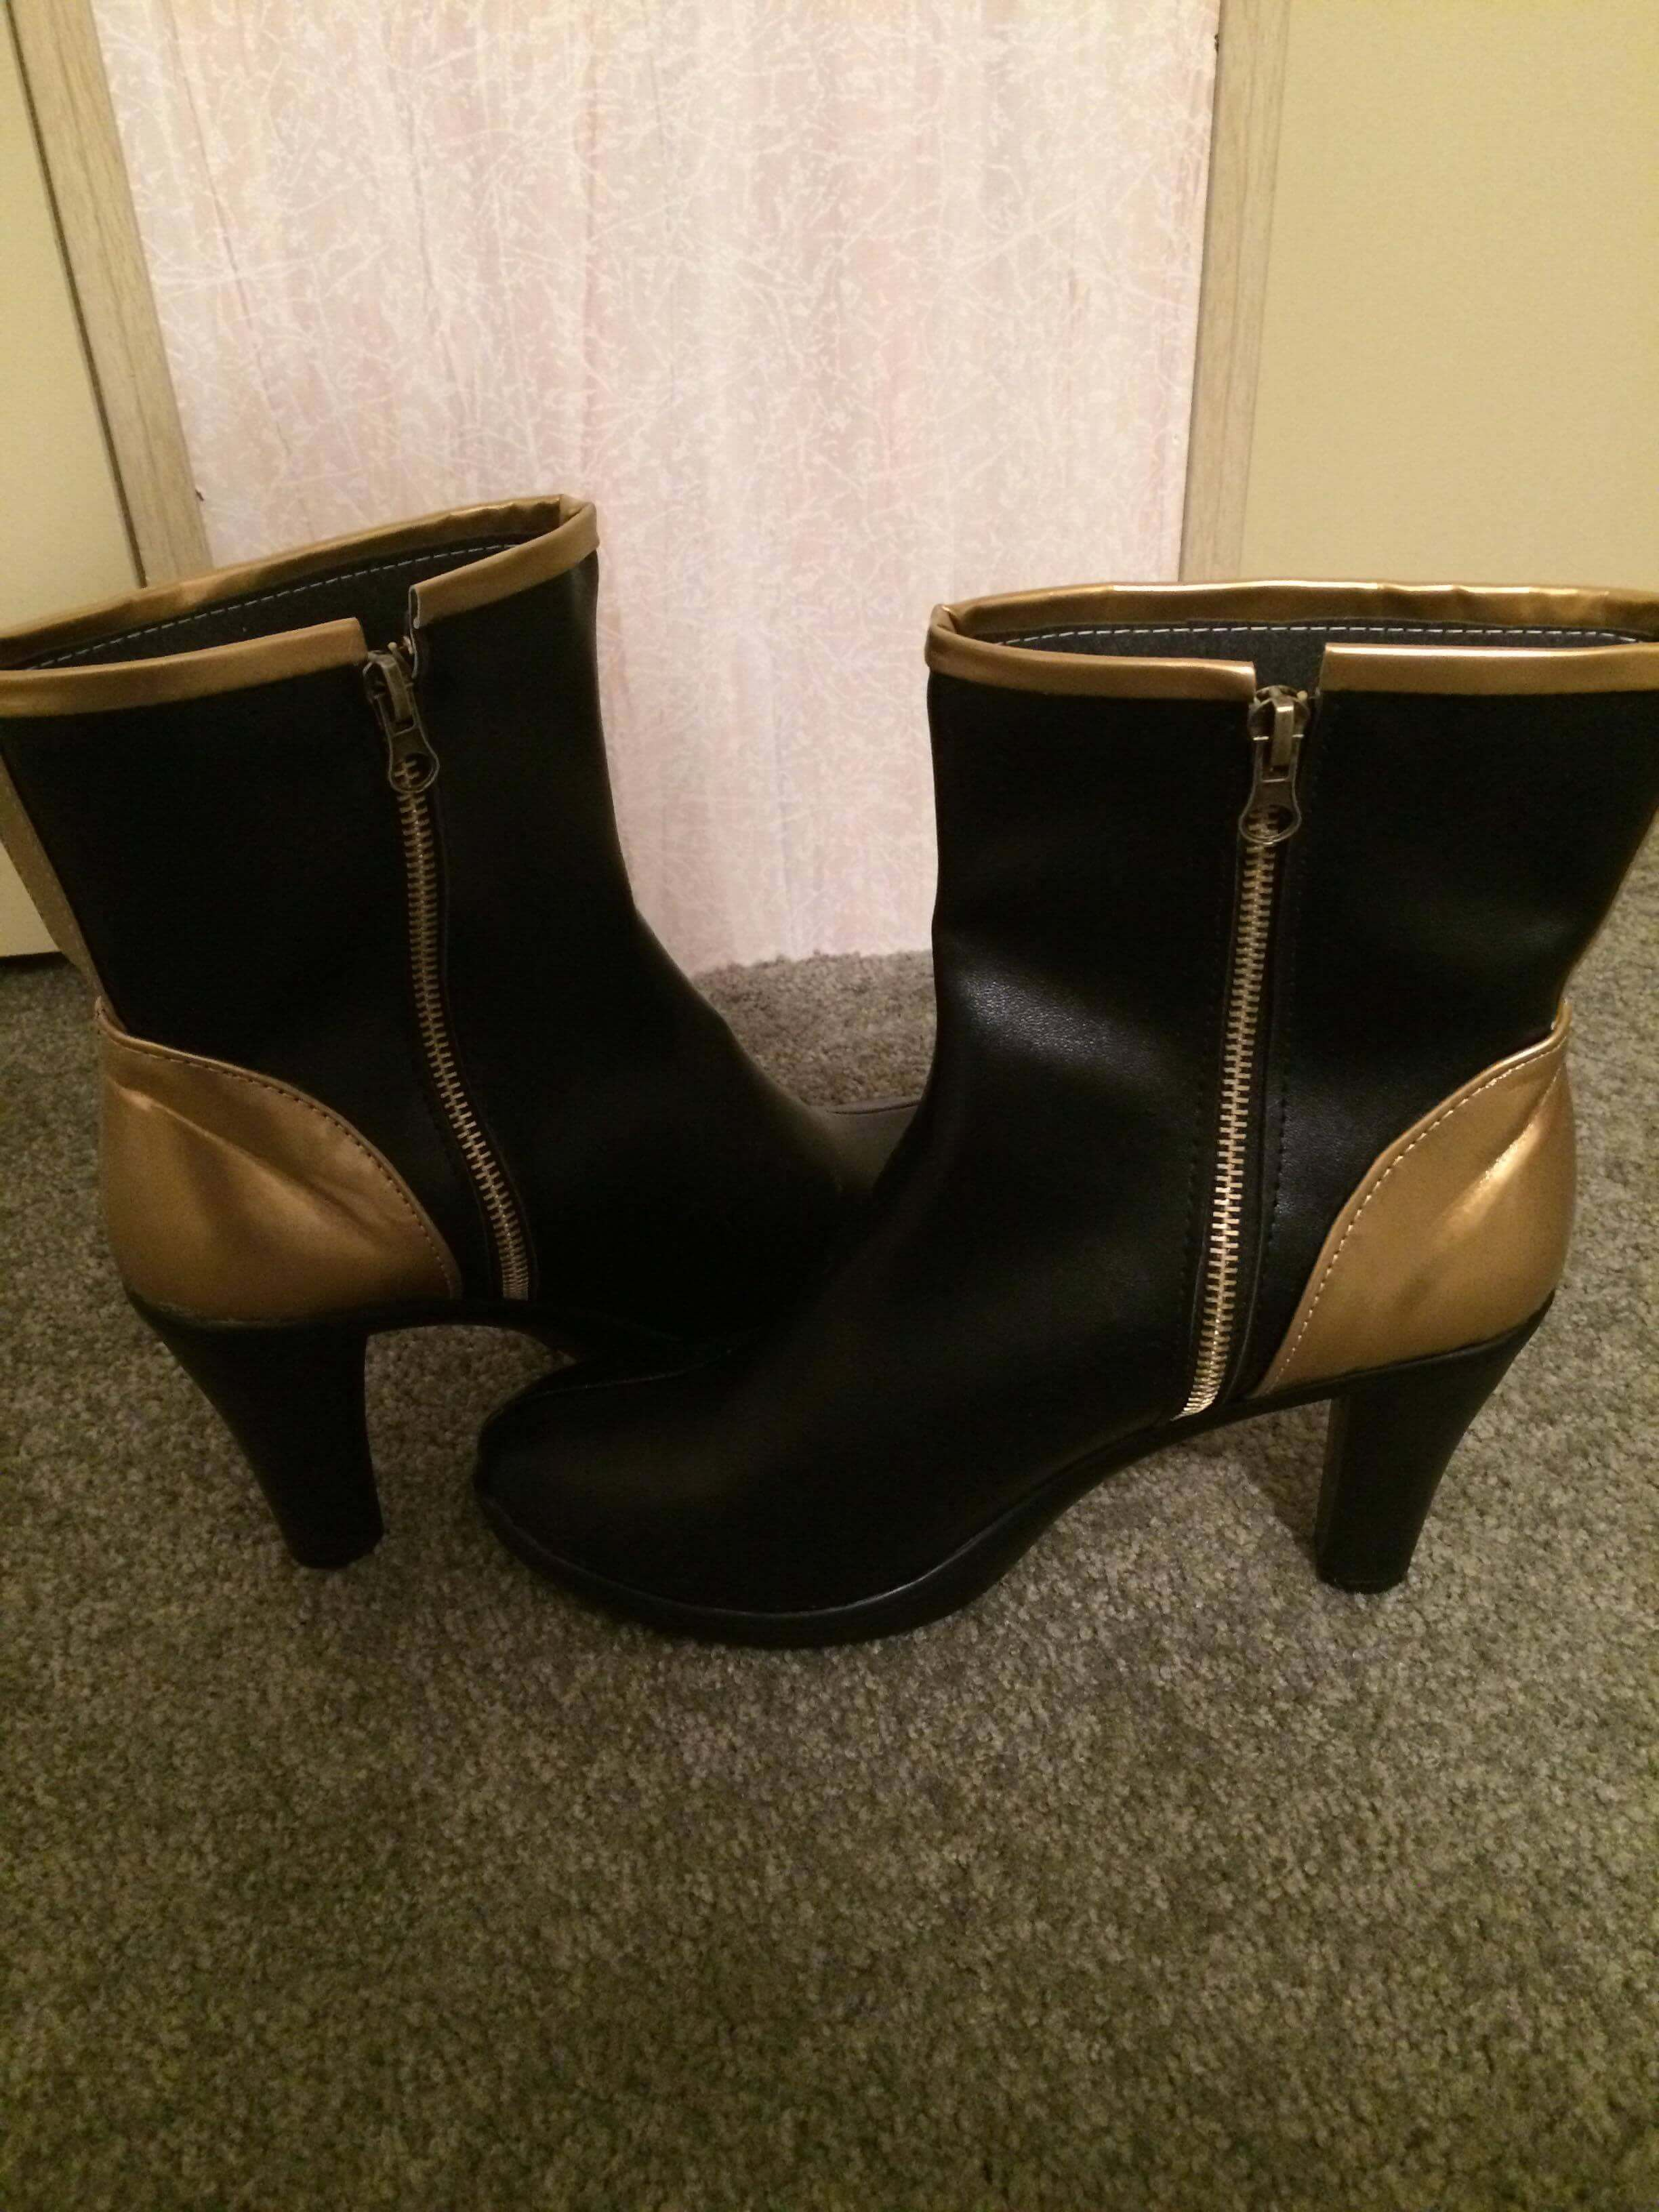 The boots look absolutely amazing.  They're comfortable and I'm in love with them!  Would definitely recommend for a K/DA Kai'sa cosplay!!